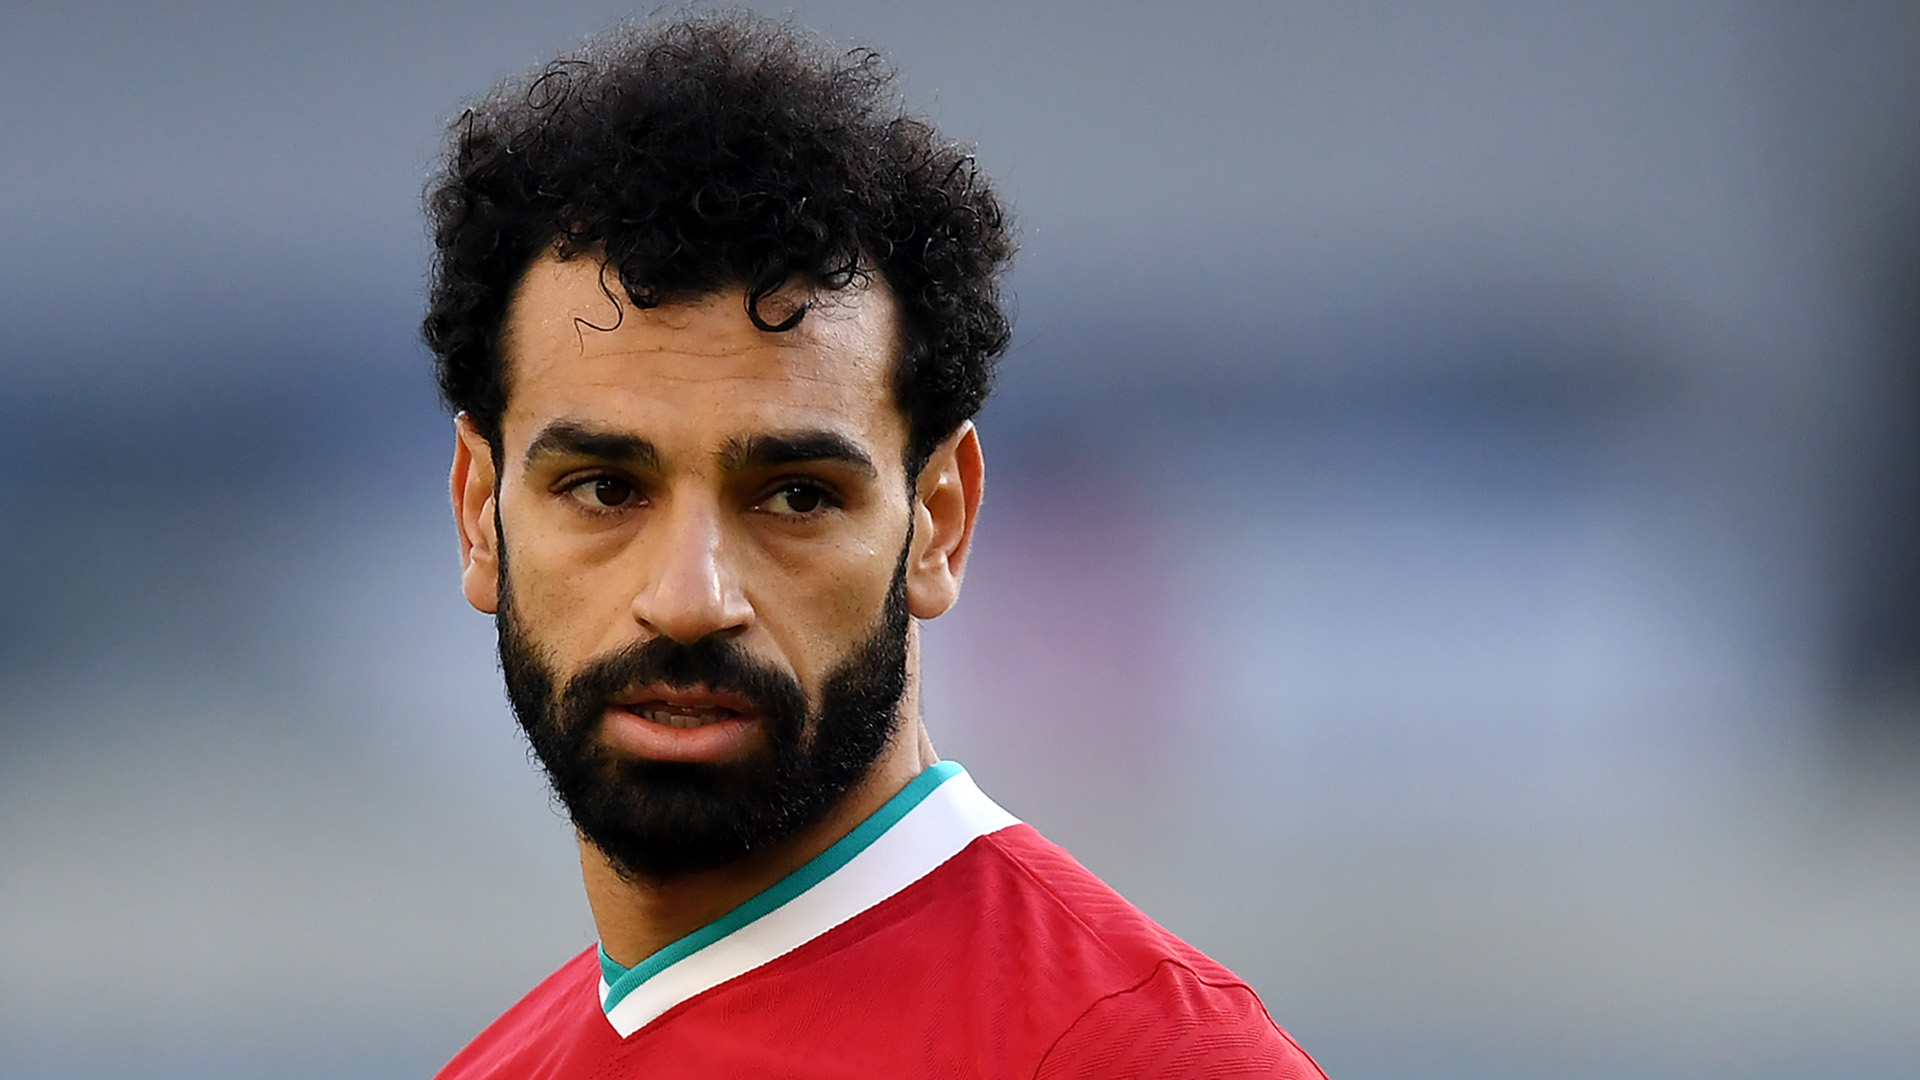 Salah benched after Liverpool star admits to being 'very disappointed' by Klopp decision not to name him captain